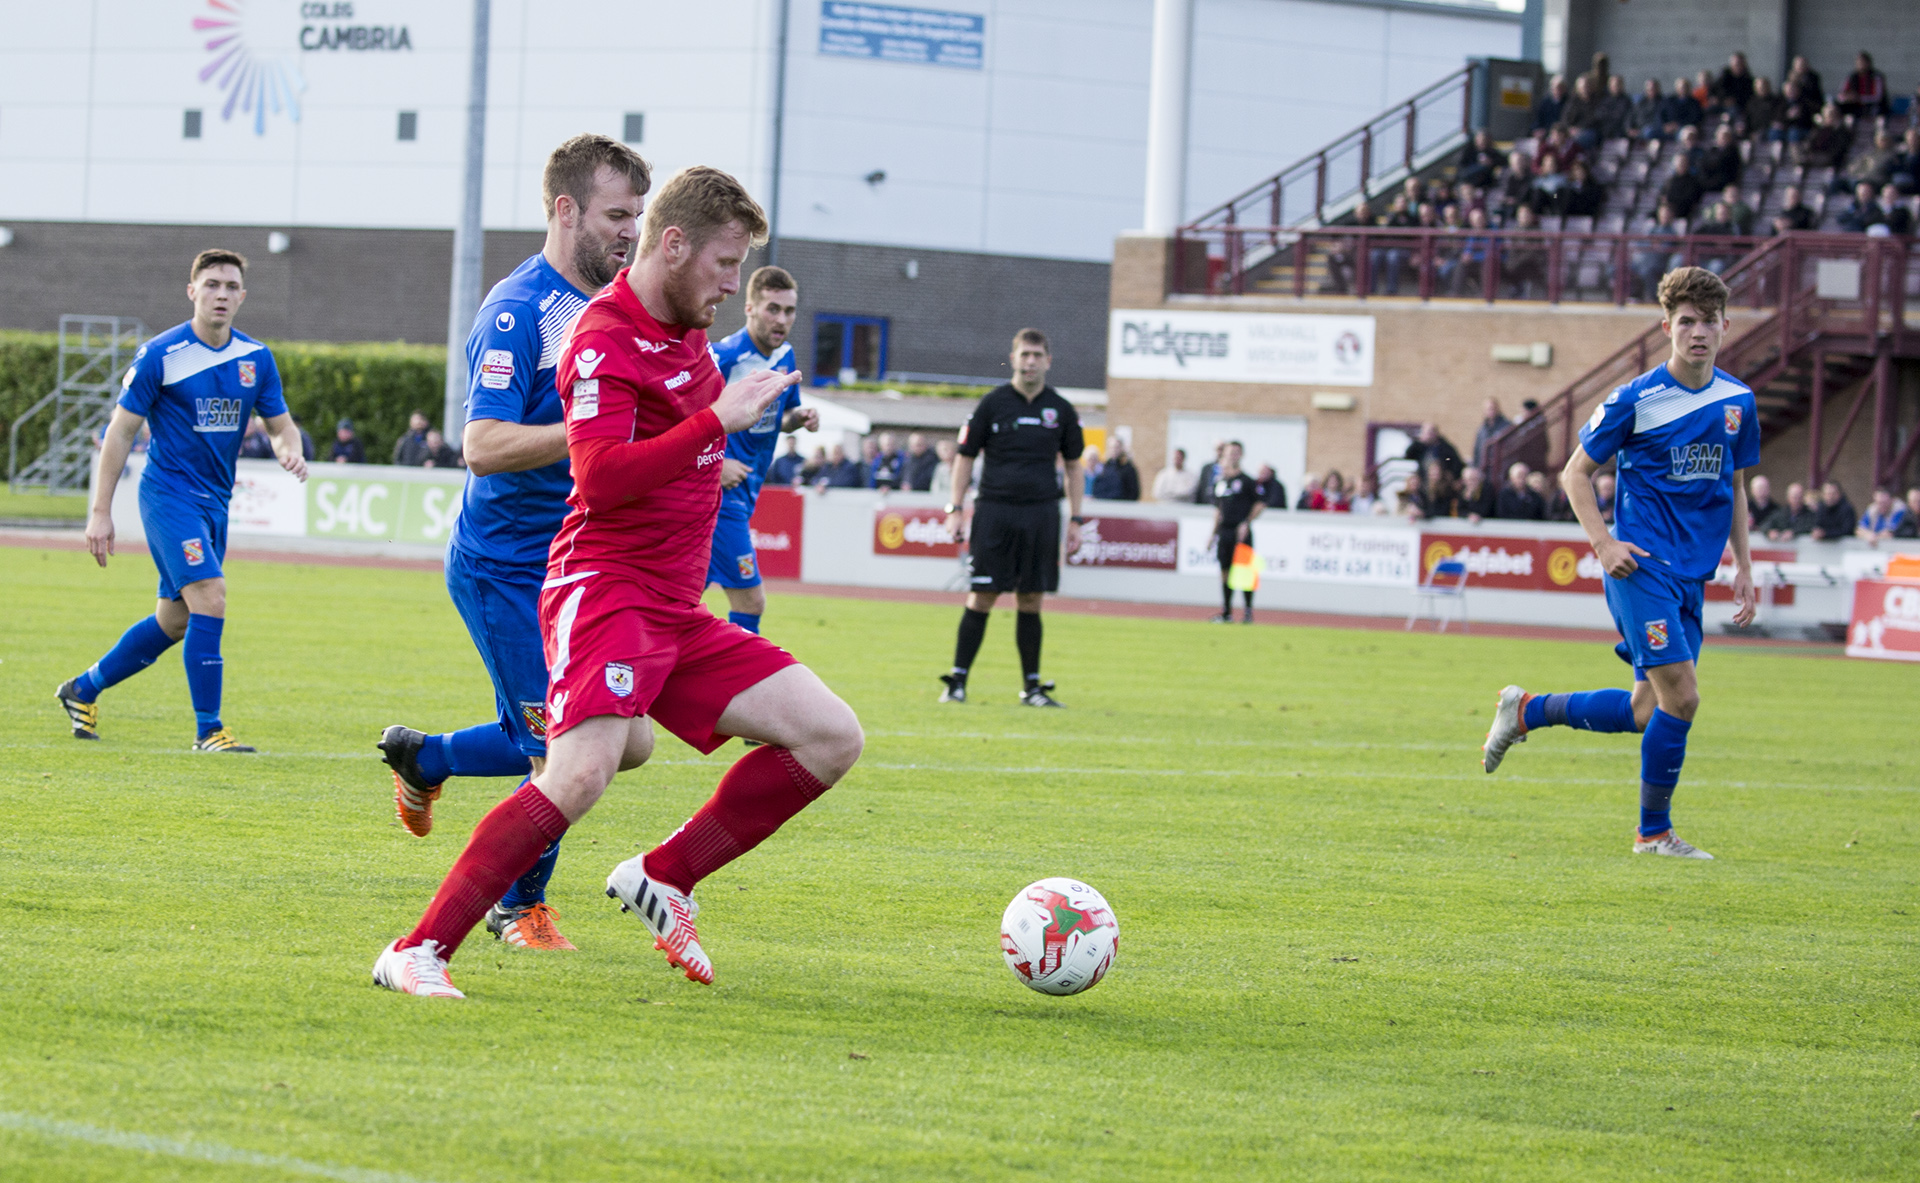 Jay Owen bursts into the Bangor box - © NCM Media